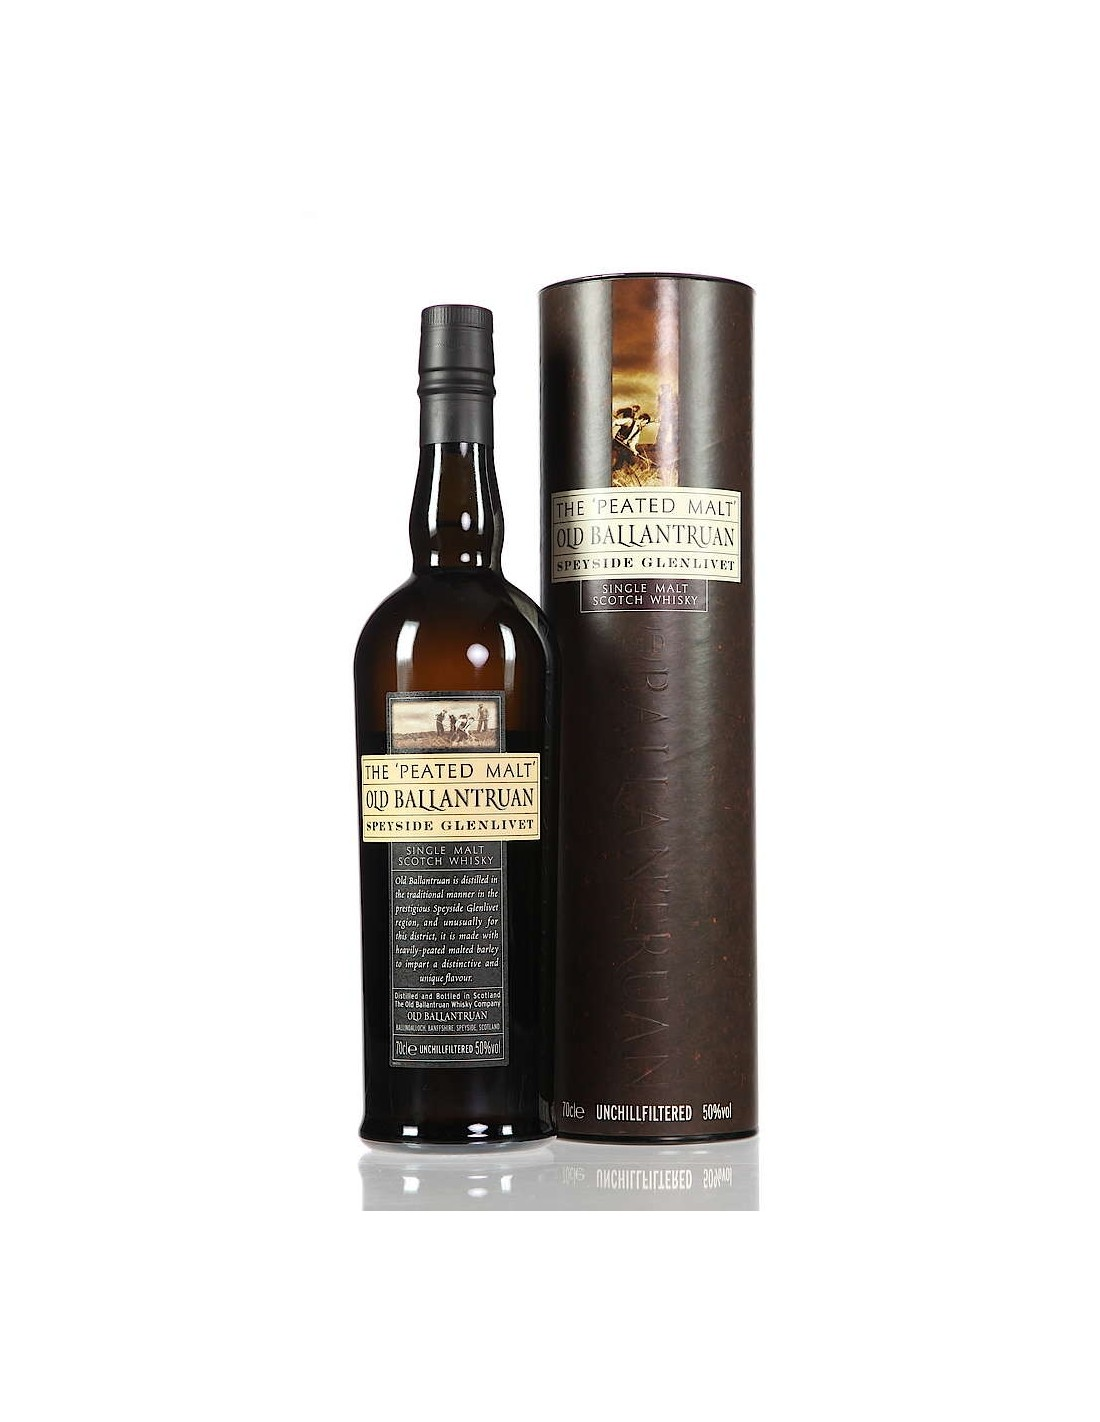 Whisky Old Ballantruan, 50% alc., 0.7L, Scotia